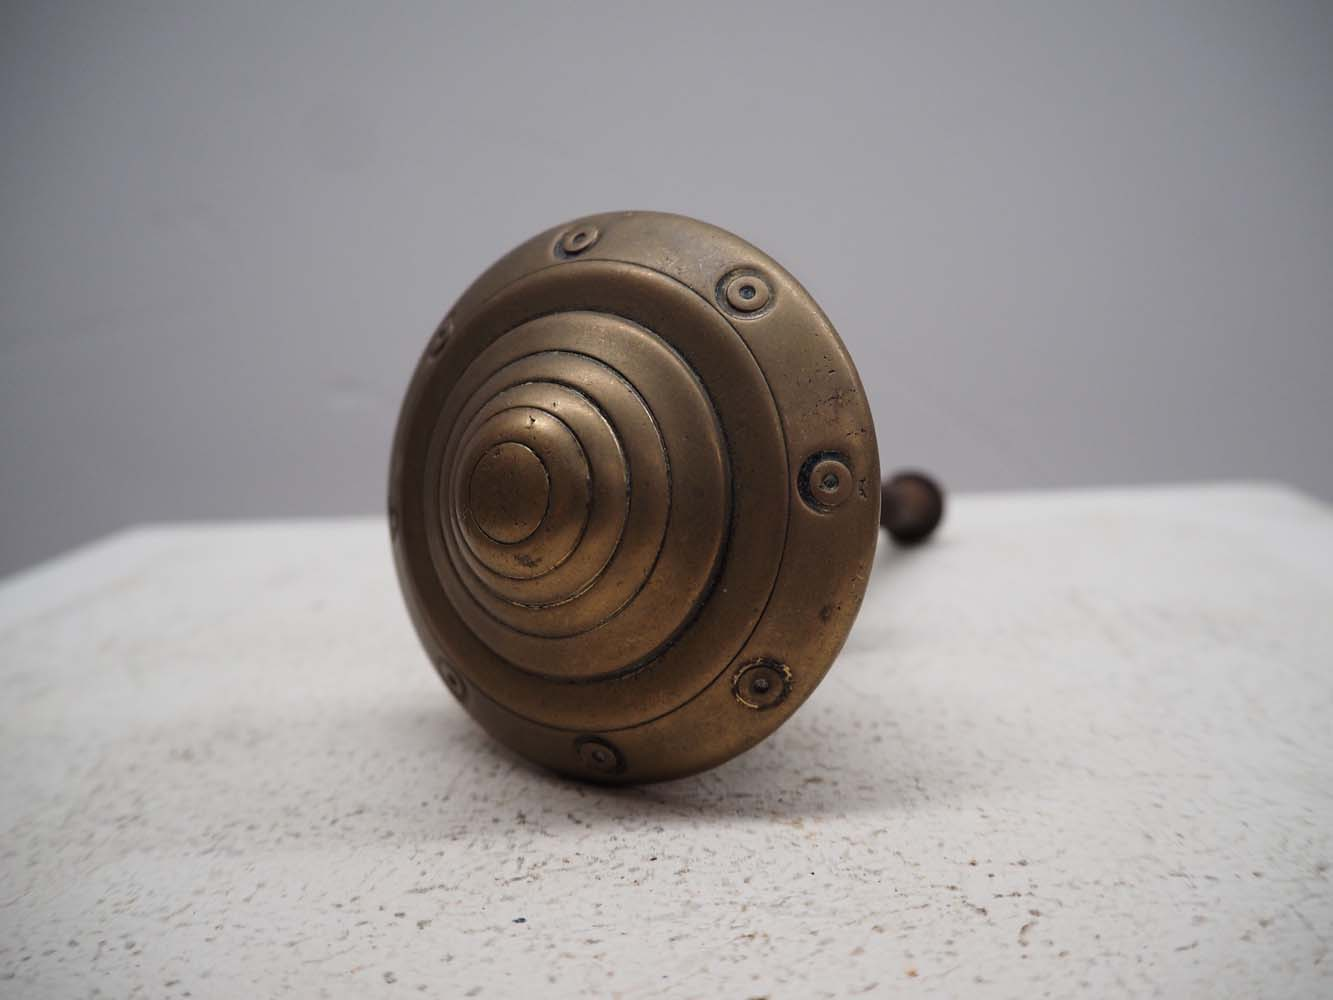 Ottoman Period mid 19th century bronze 'Turban Shaped' Front Door knob